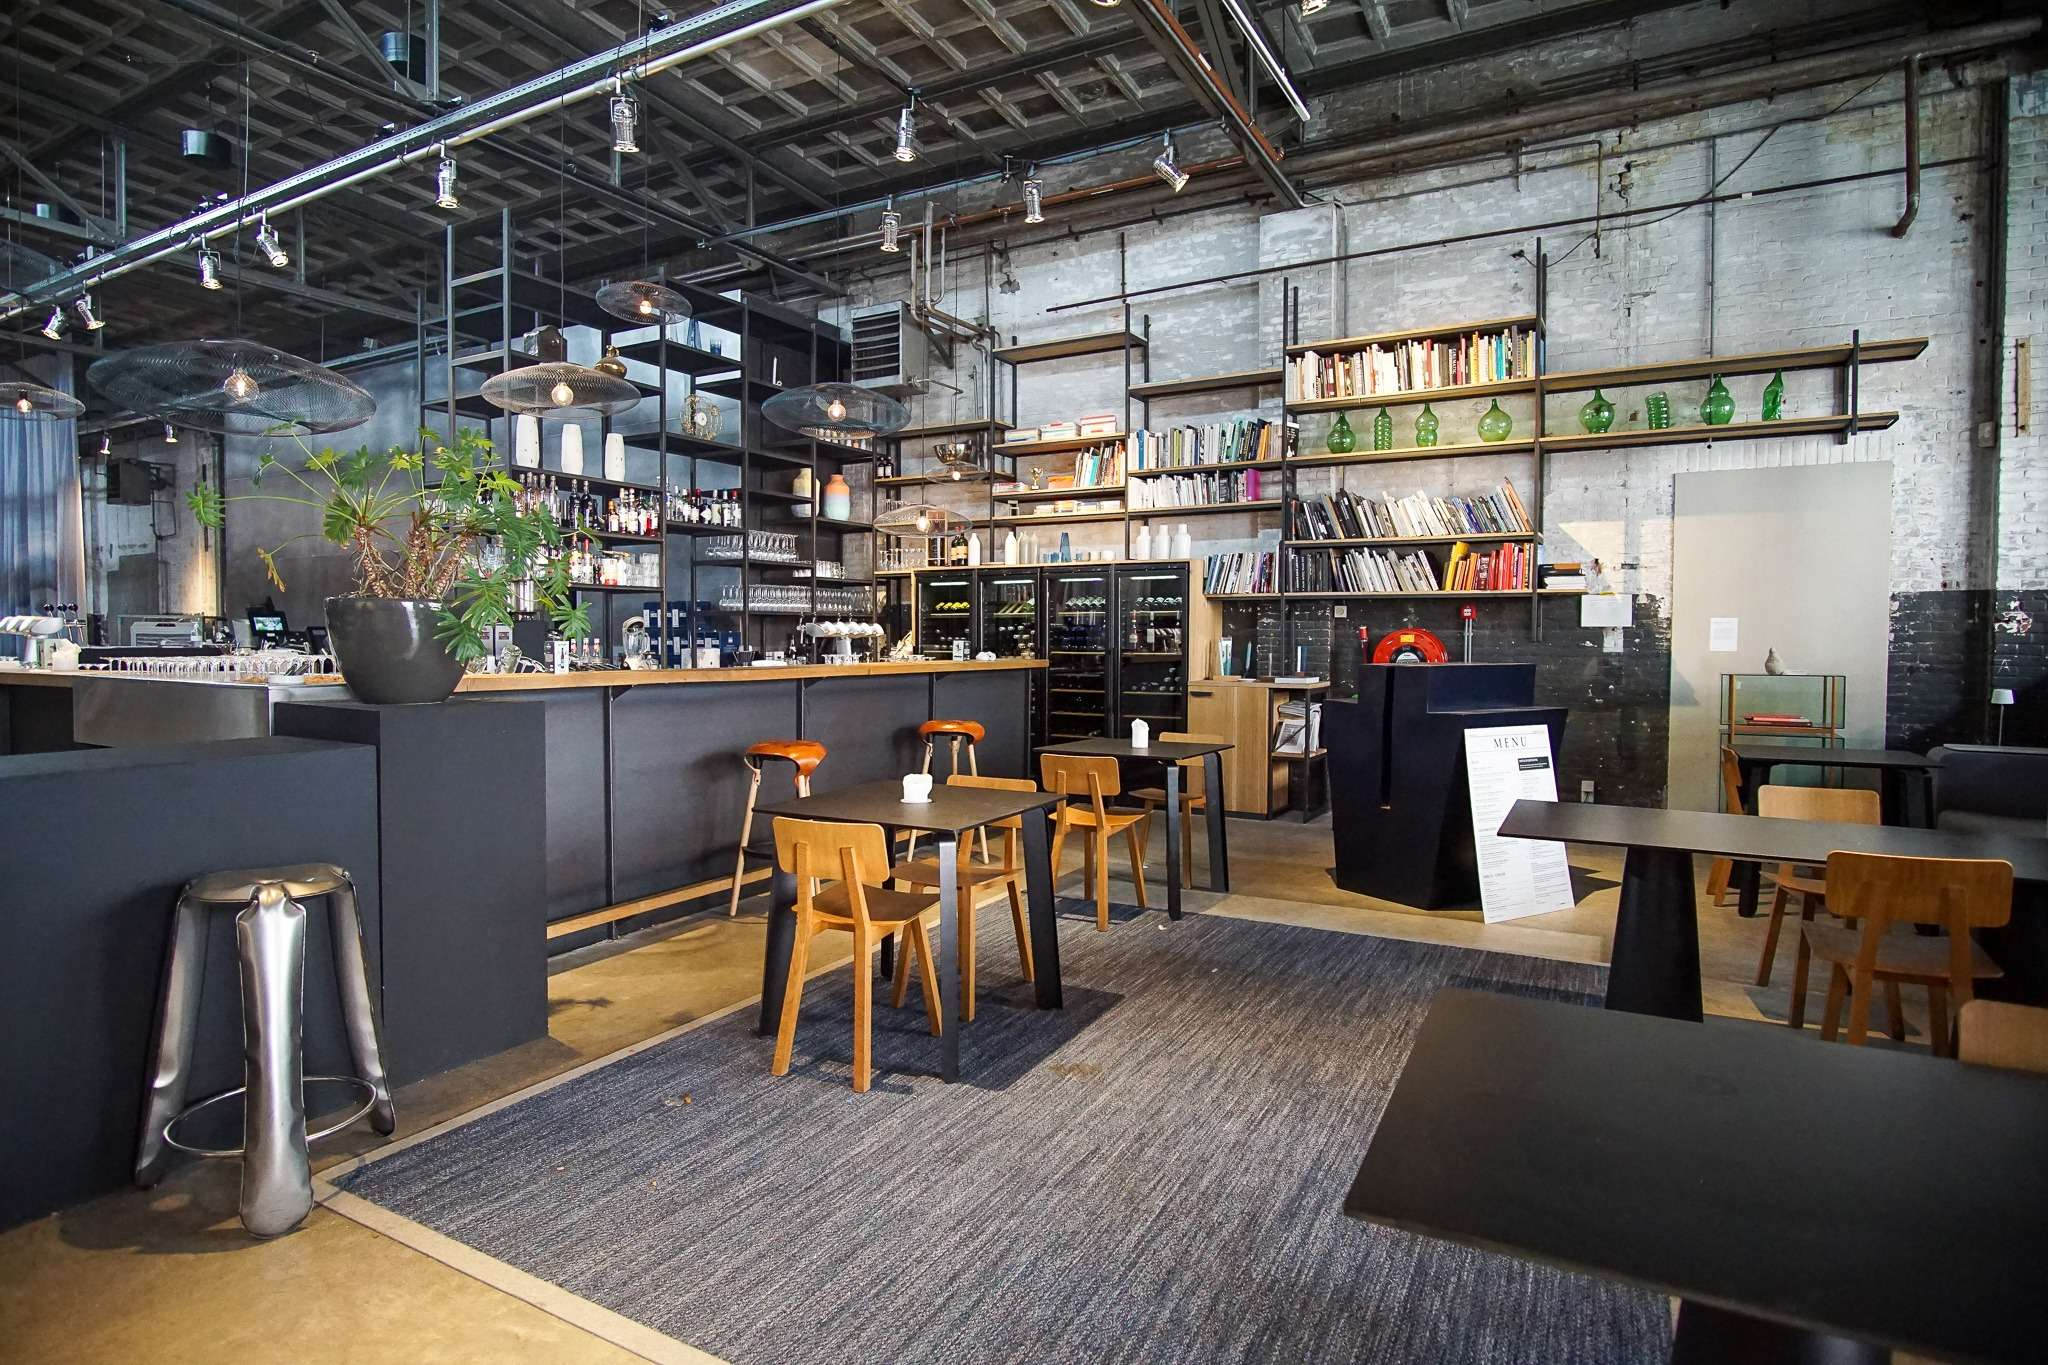 industrial chic themed bar with black and wooden furniture at Kazerne